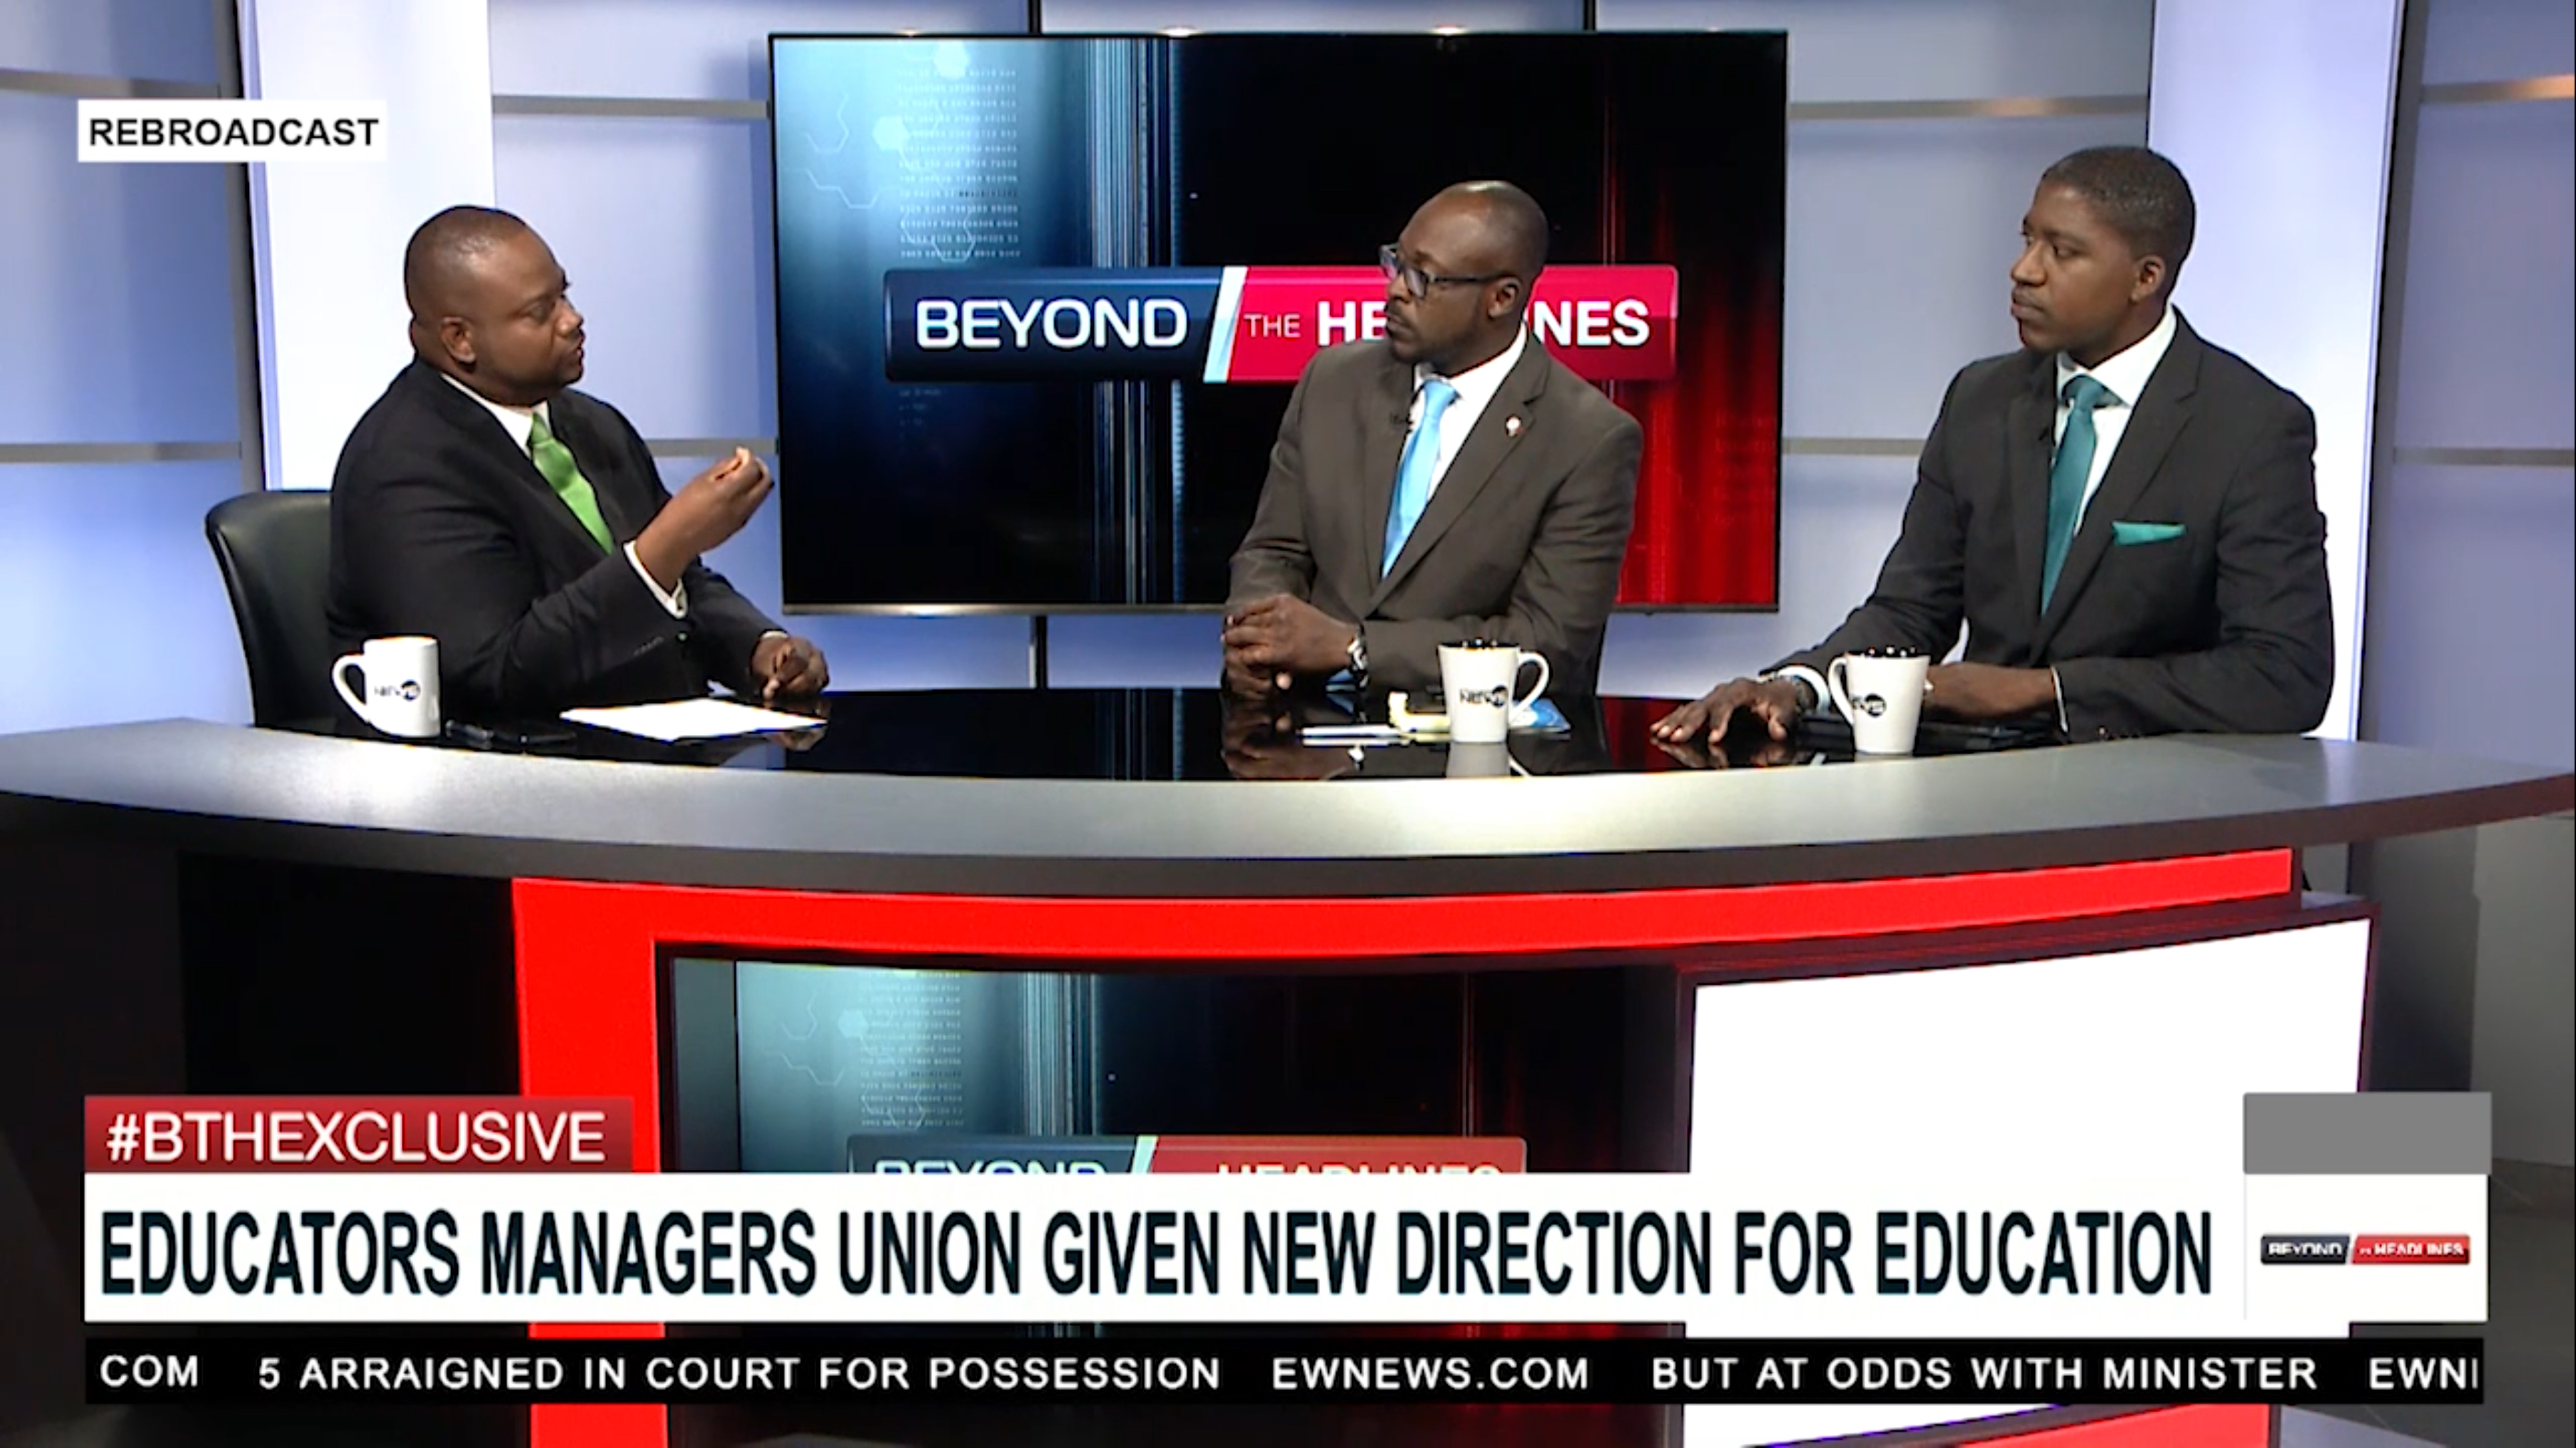 Educators Managers Union respond to national curricula revision mandate